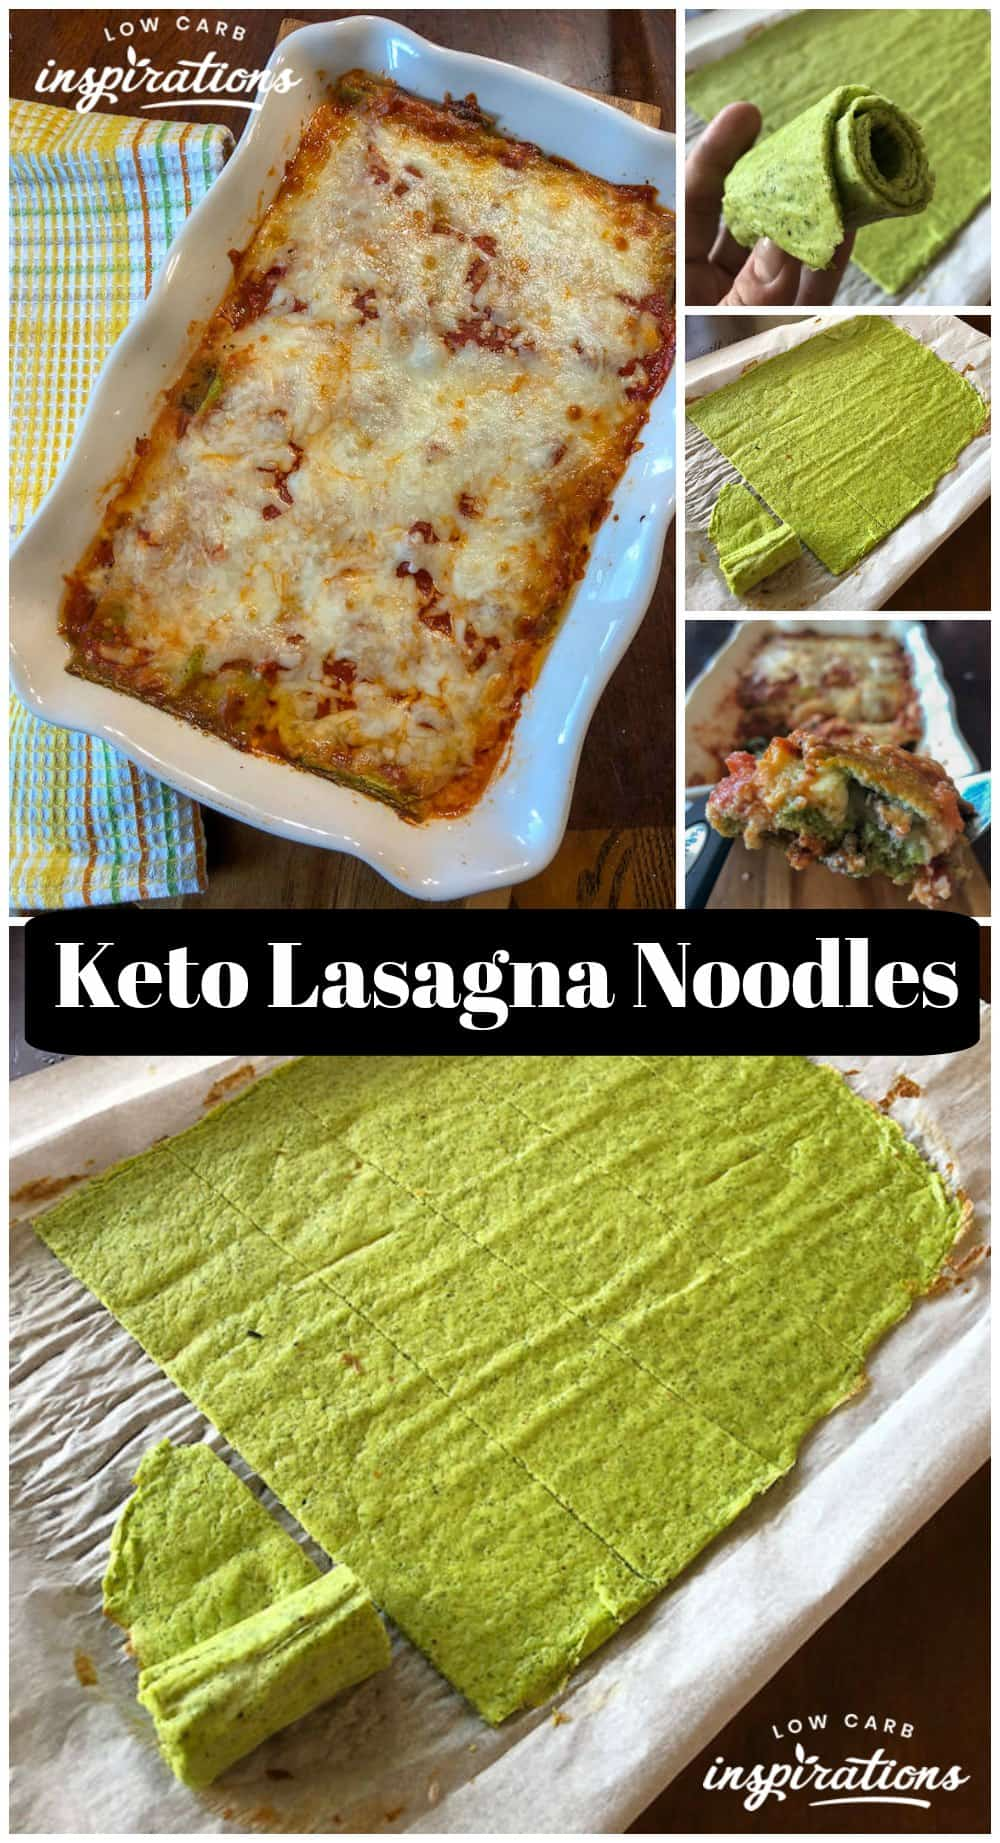 This Keto Noodles recipe is one of the best noodle recipes Ive tried! They are super simple to make and dont take long at all to cook! #keto #lowcarb #noodles #lowcarbnoodles #kale #easy #homemade